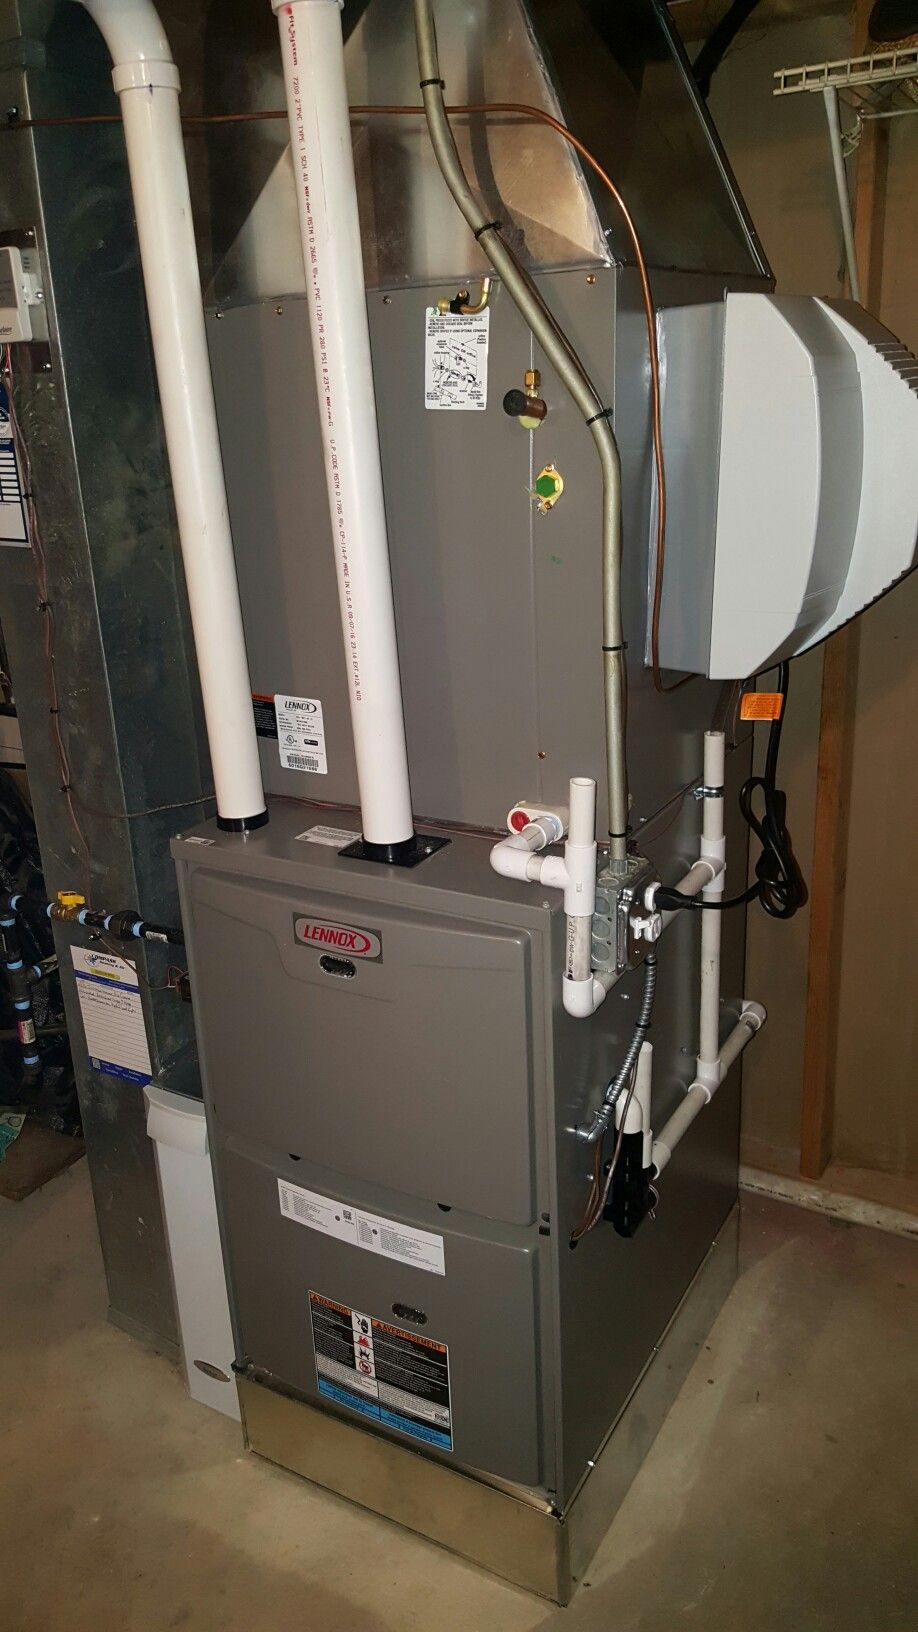 Lennox Ml193 High Efficiency Furnace Cased Evaporator Coil Provided By Lennox Through Their Heat Residential Heating Systems Hvac Installation Heating Systems